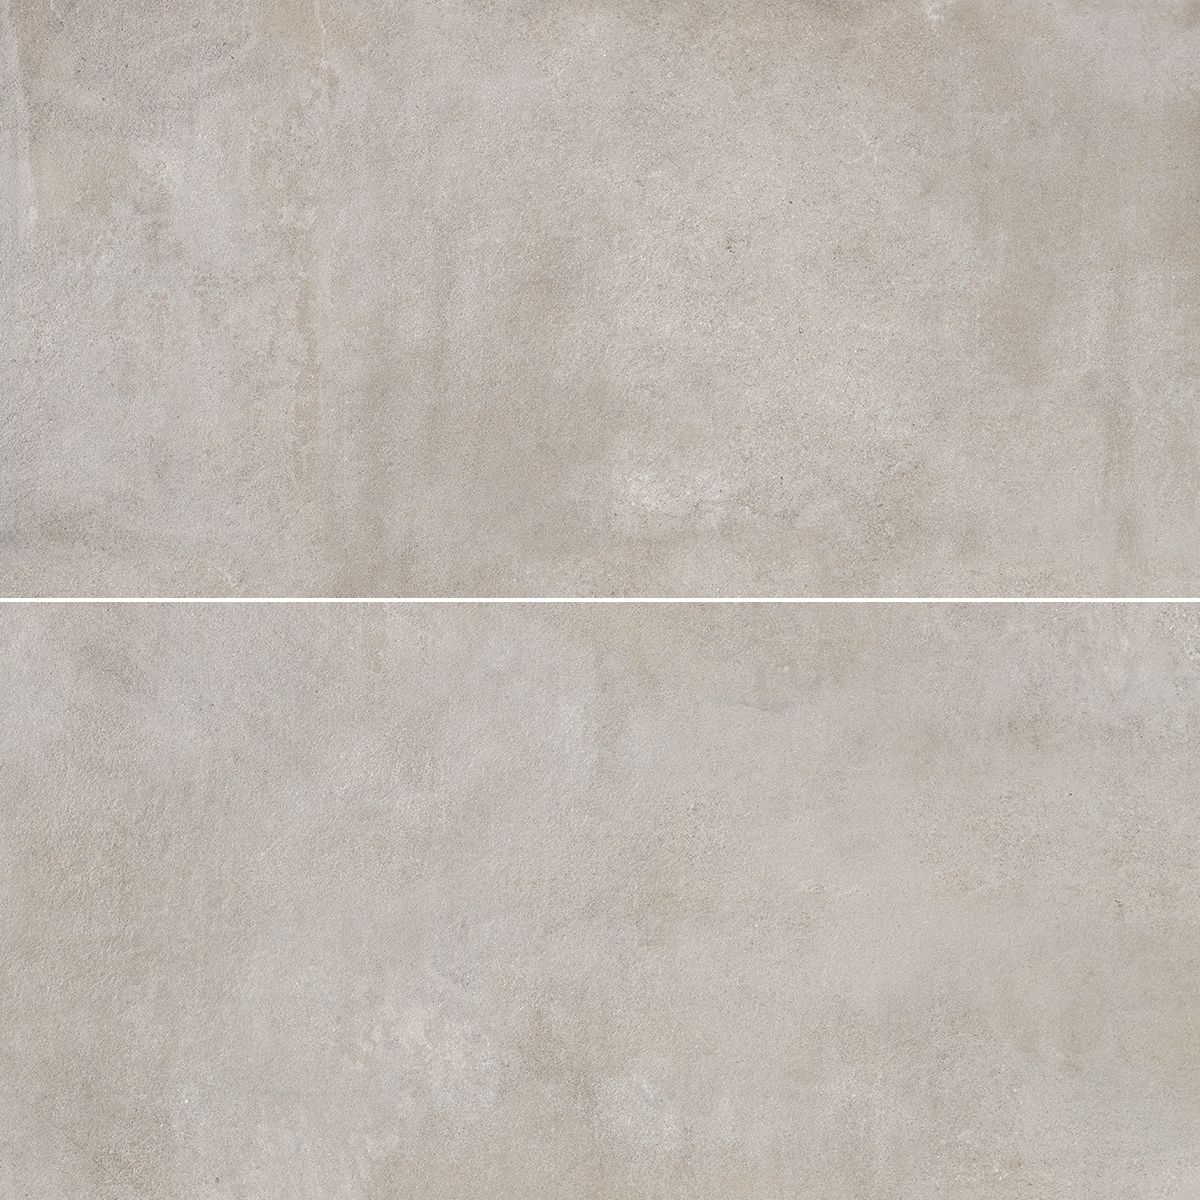 Ales Light Grey, Lappato, 1200x600x11,5 mm